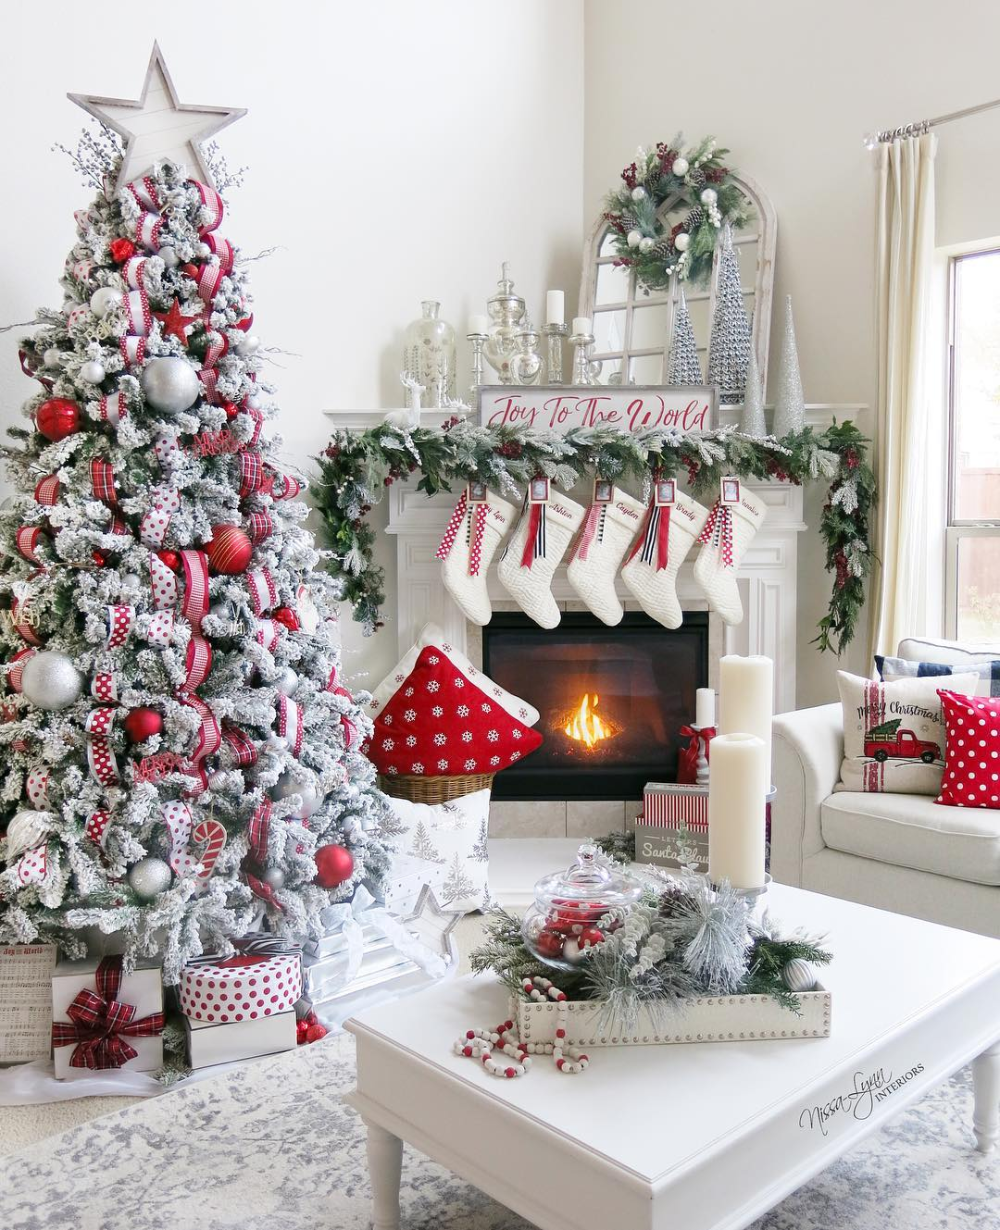 Pin On Christmas Decorating Ideas For The Home